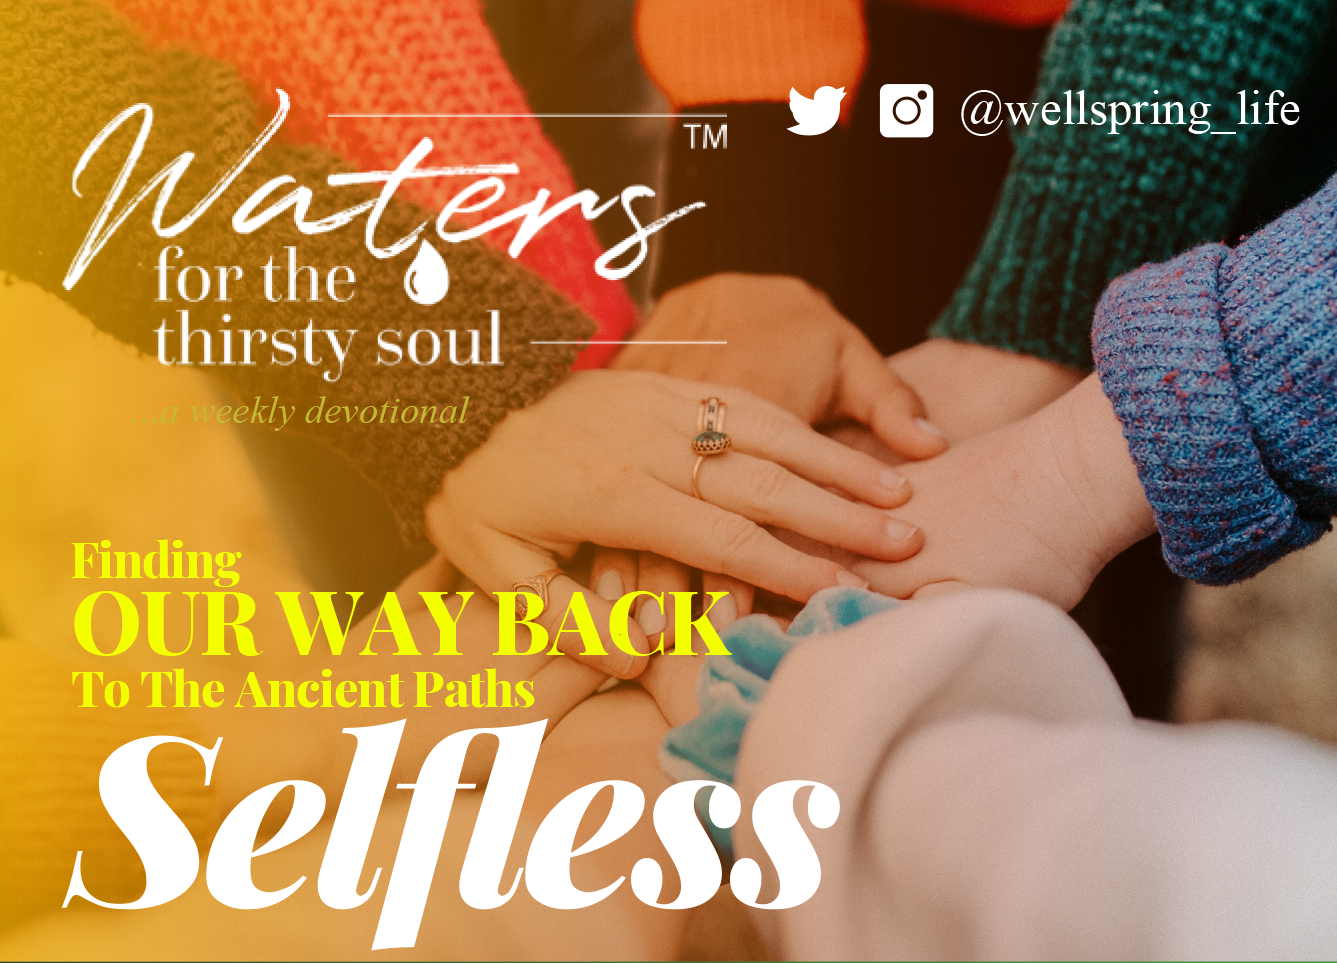 Finding Our Way Back To The Ancient Paths: SELFLESSNESS post thumbnail